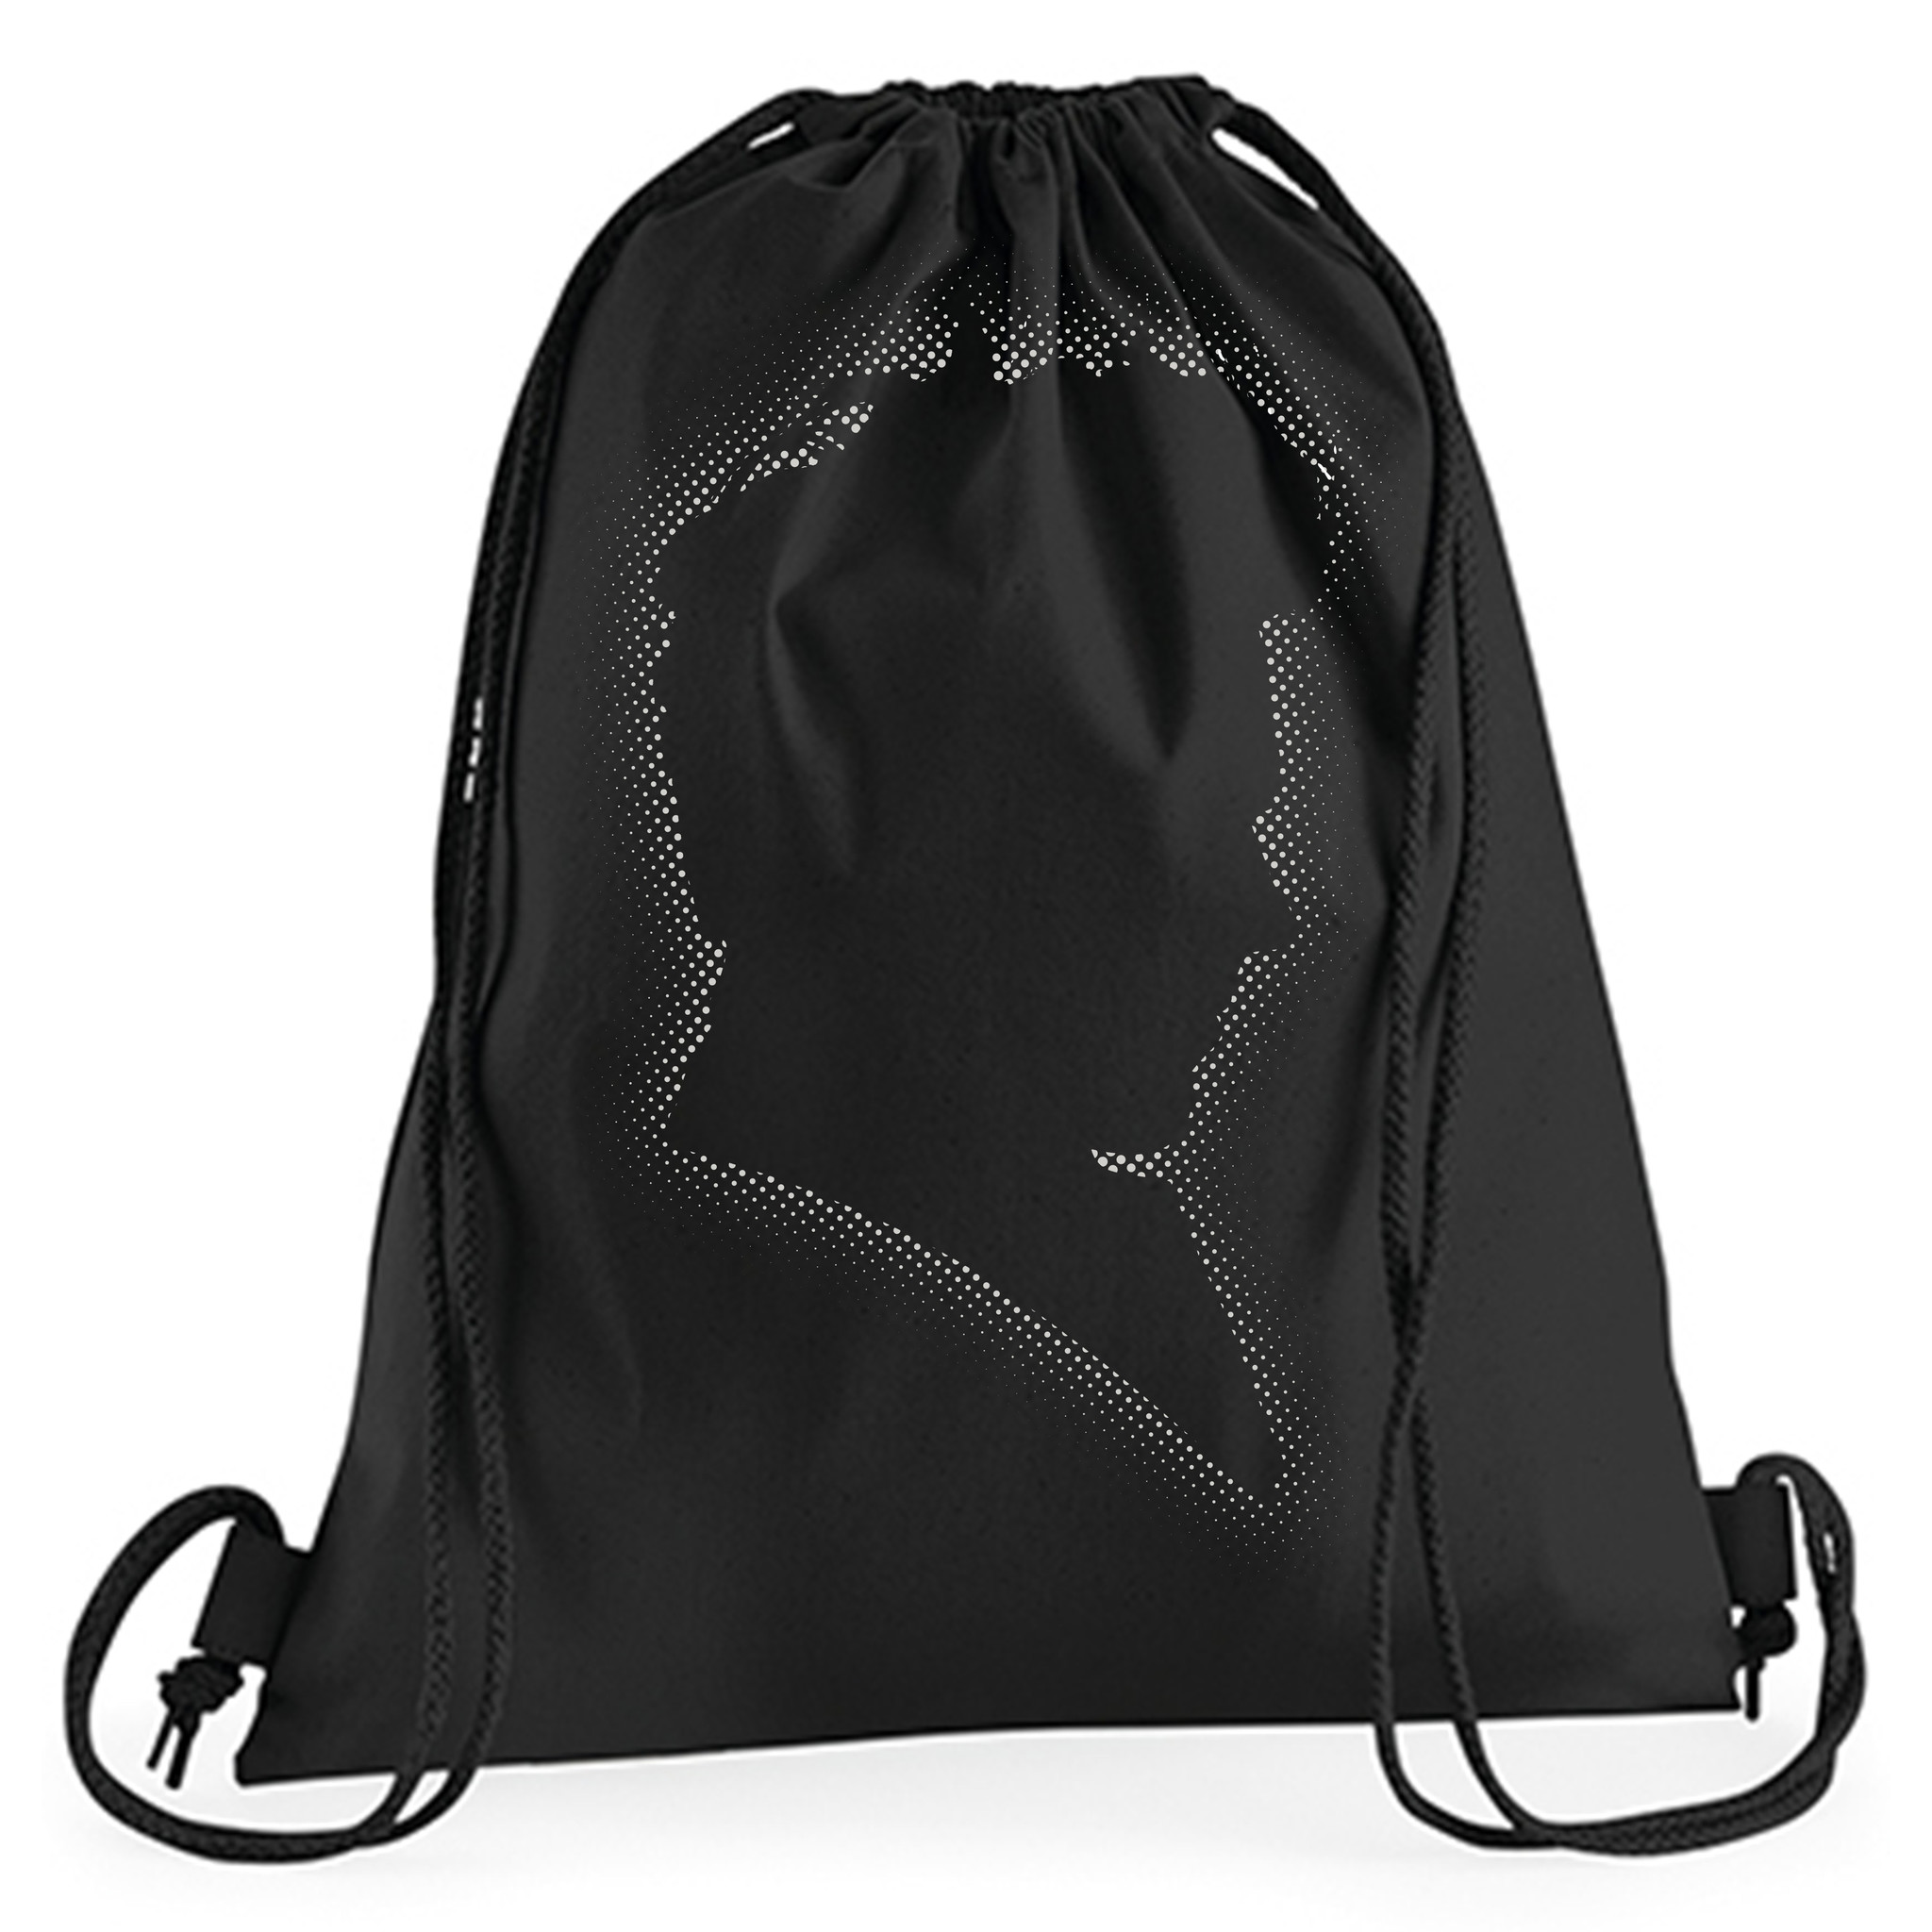 Westford Mill WM210 Gym Bag 2019